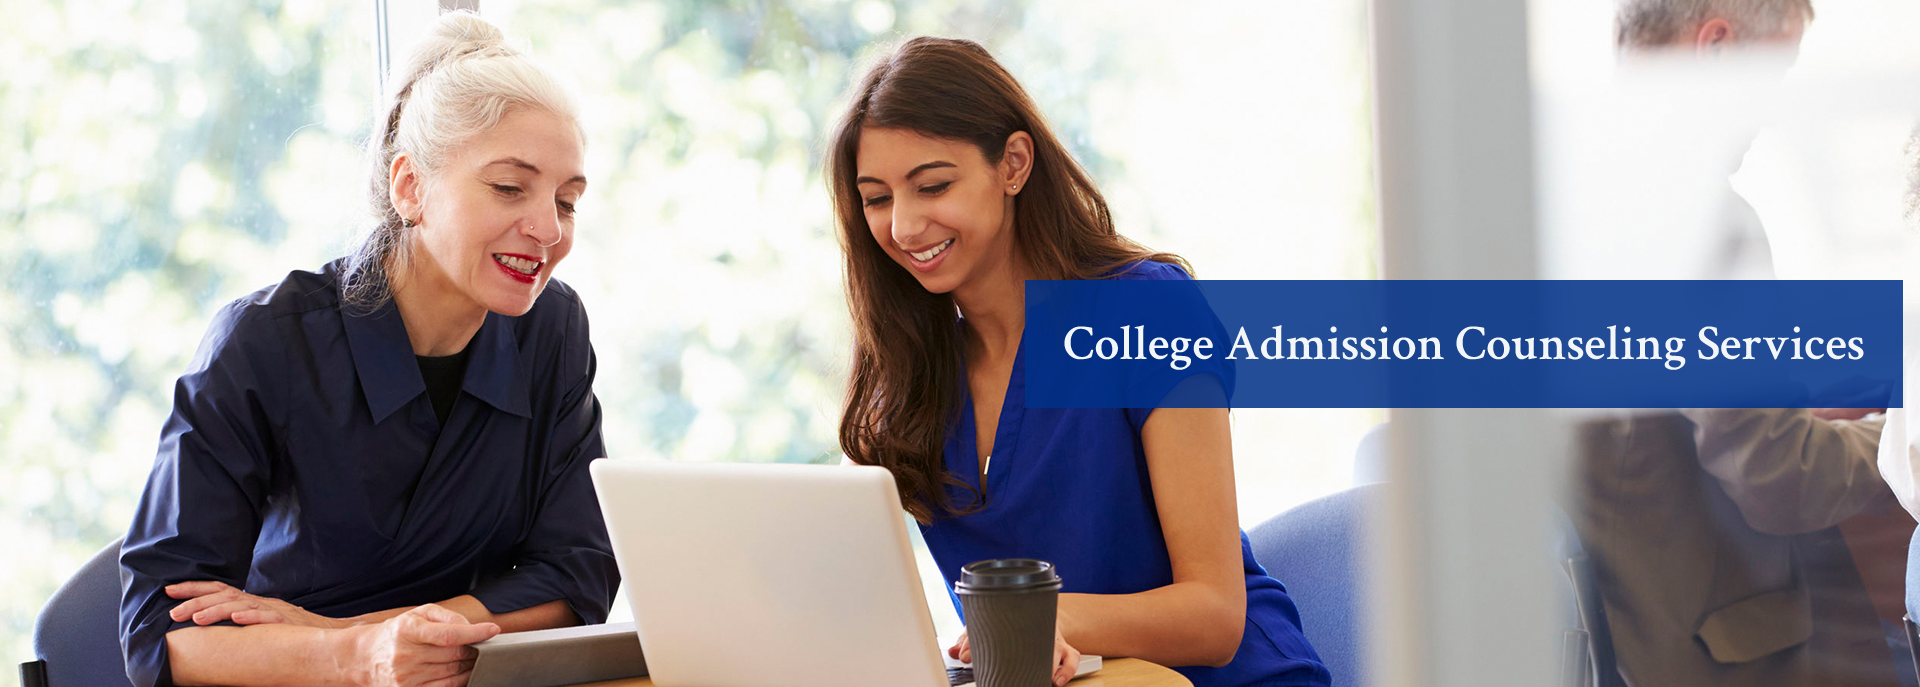 College Admission Counseling Services